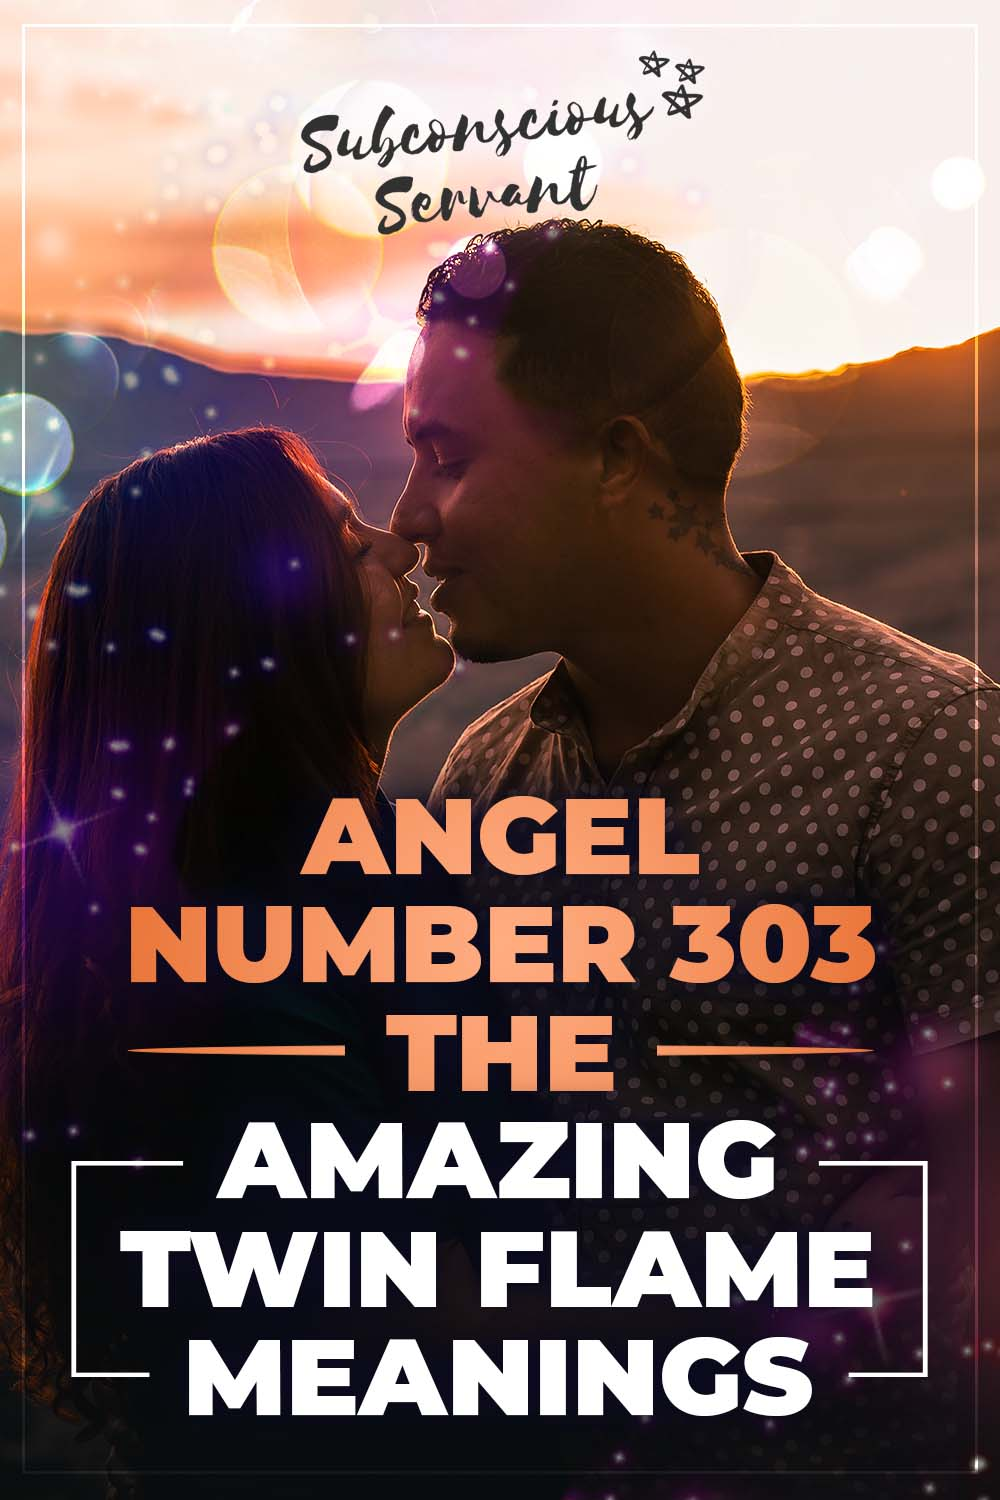 Angel Number 303: The Amazing Twin Flame Meanings